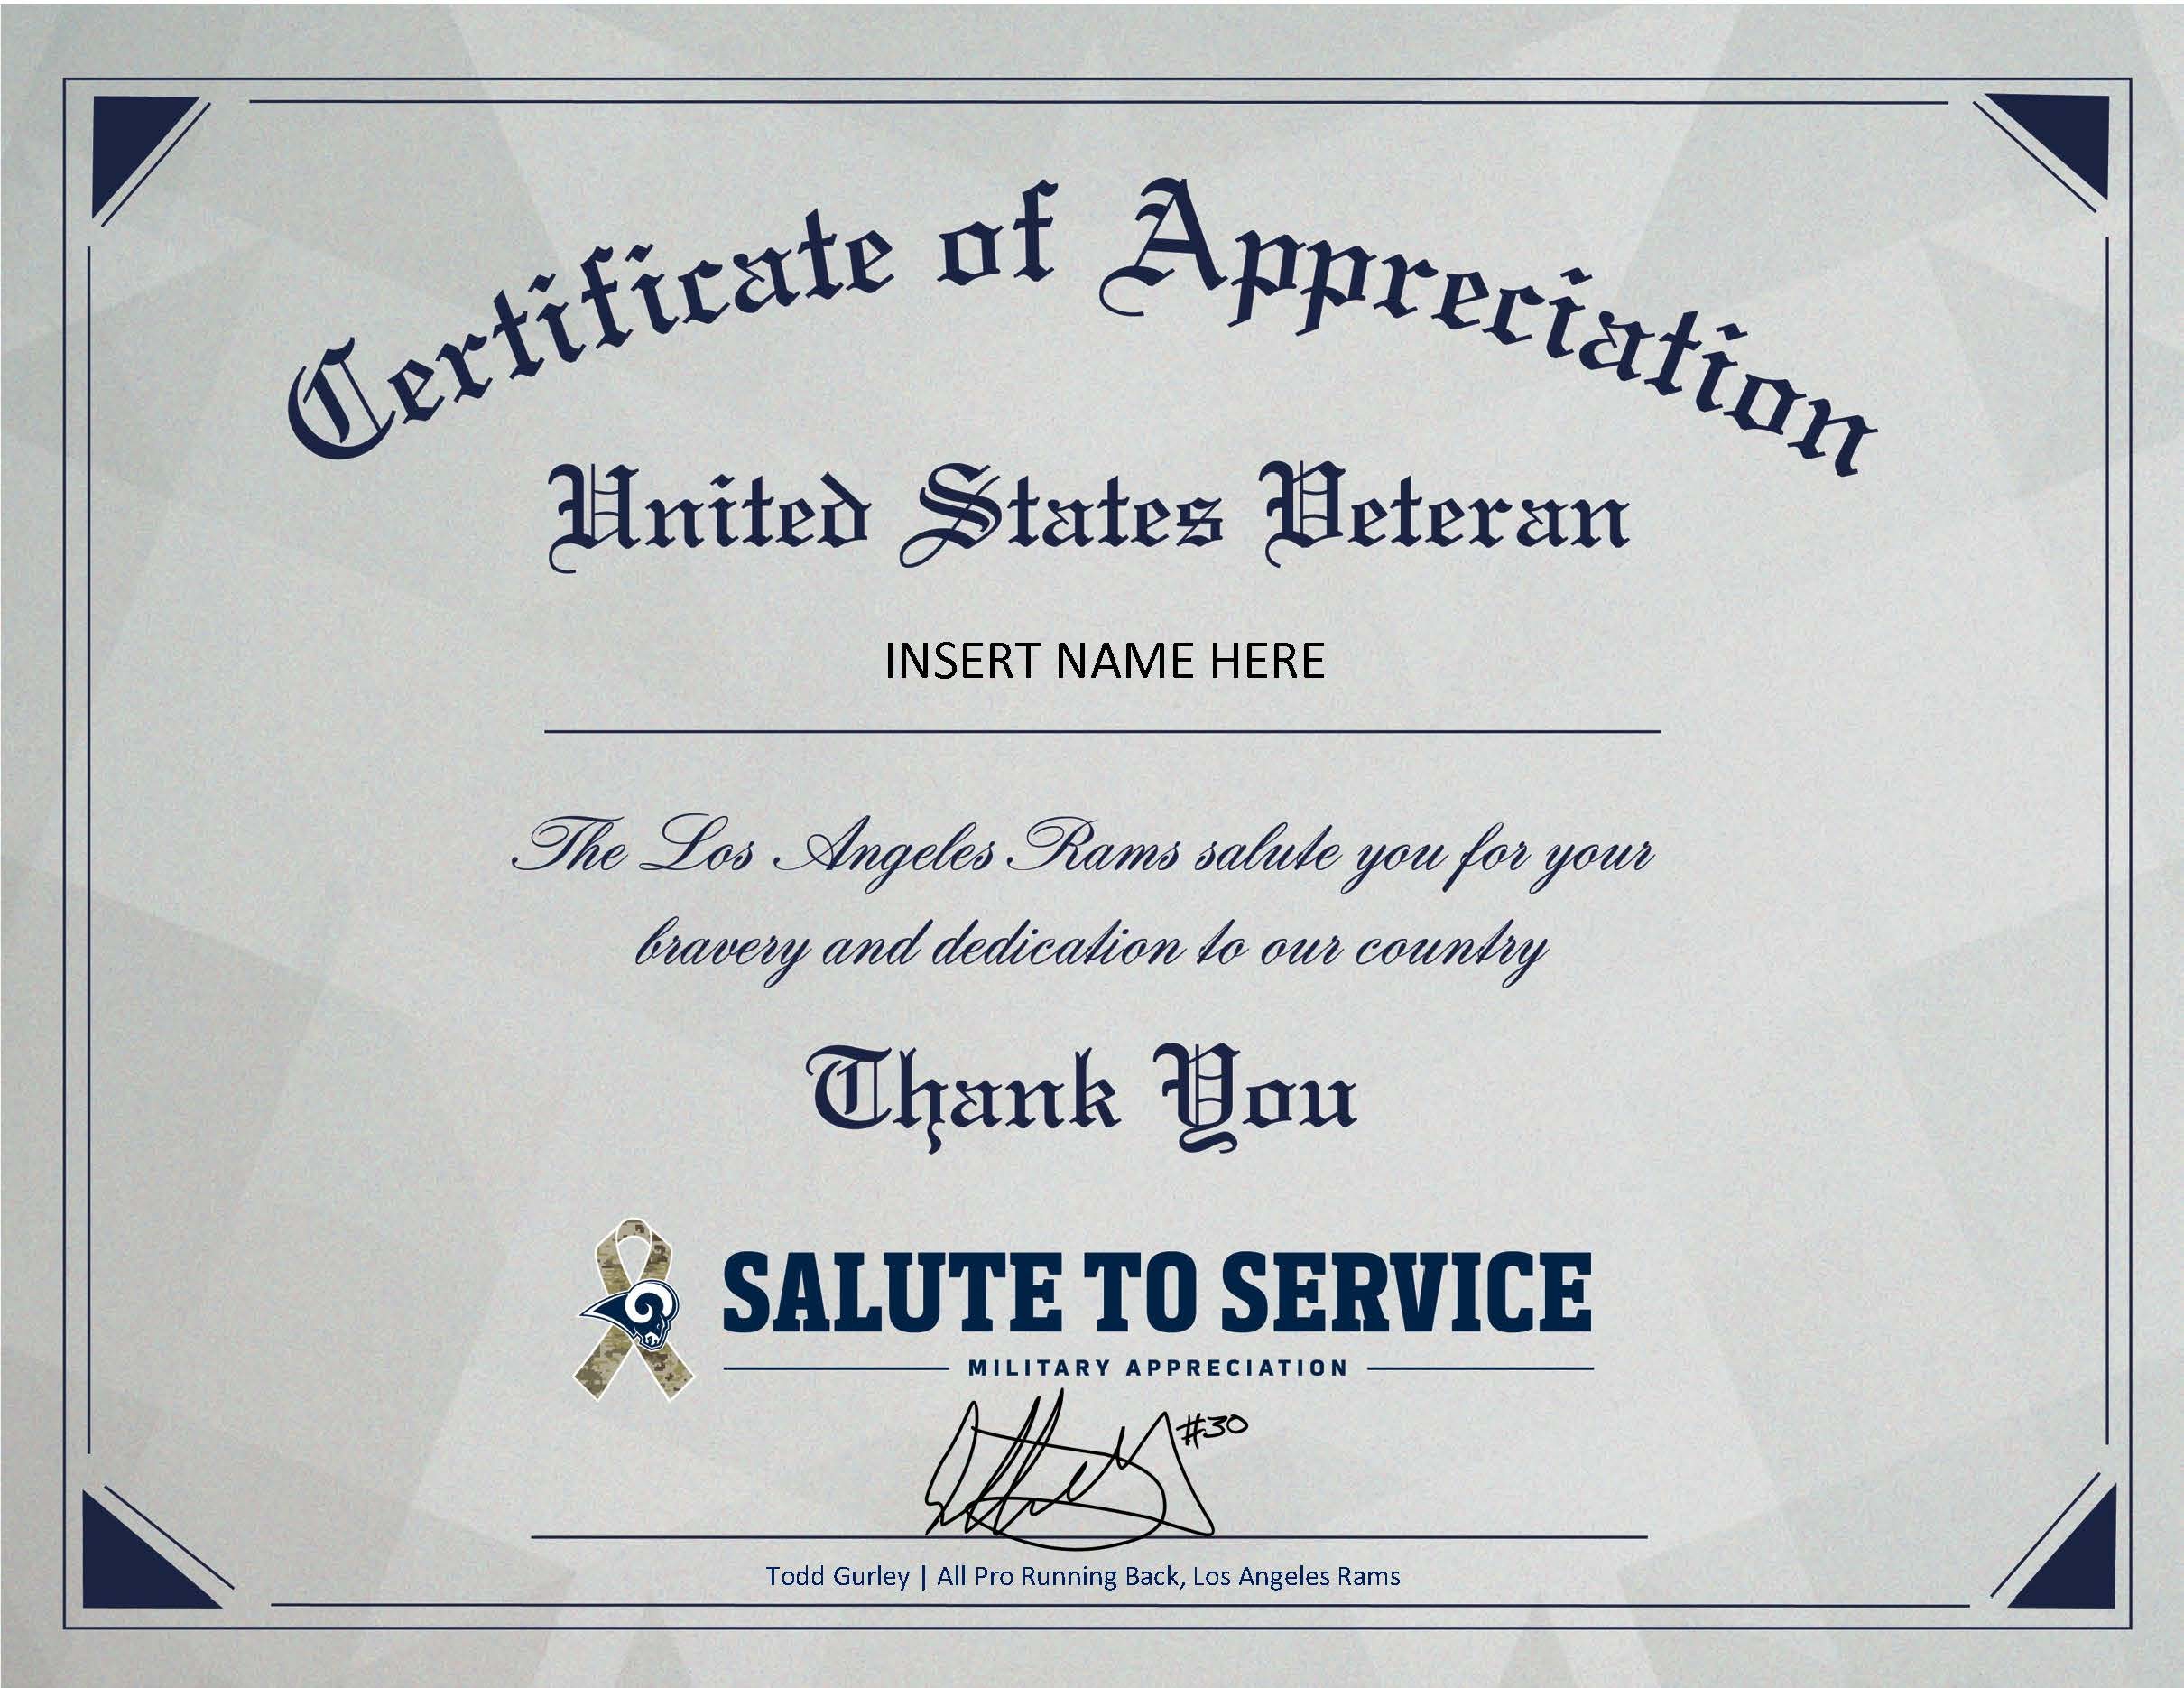 Commendation for Service Certificate